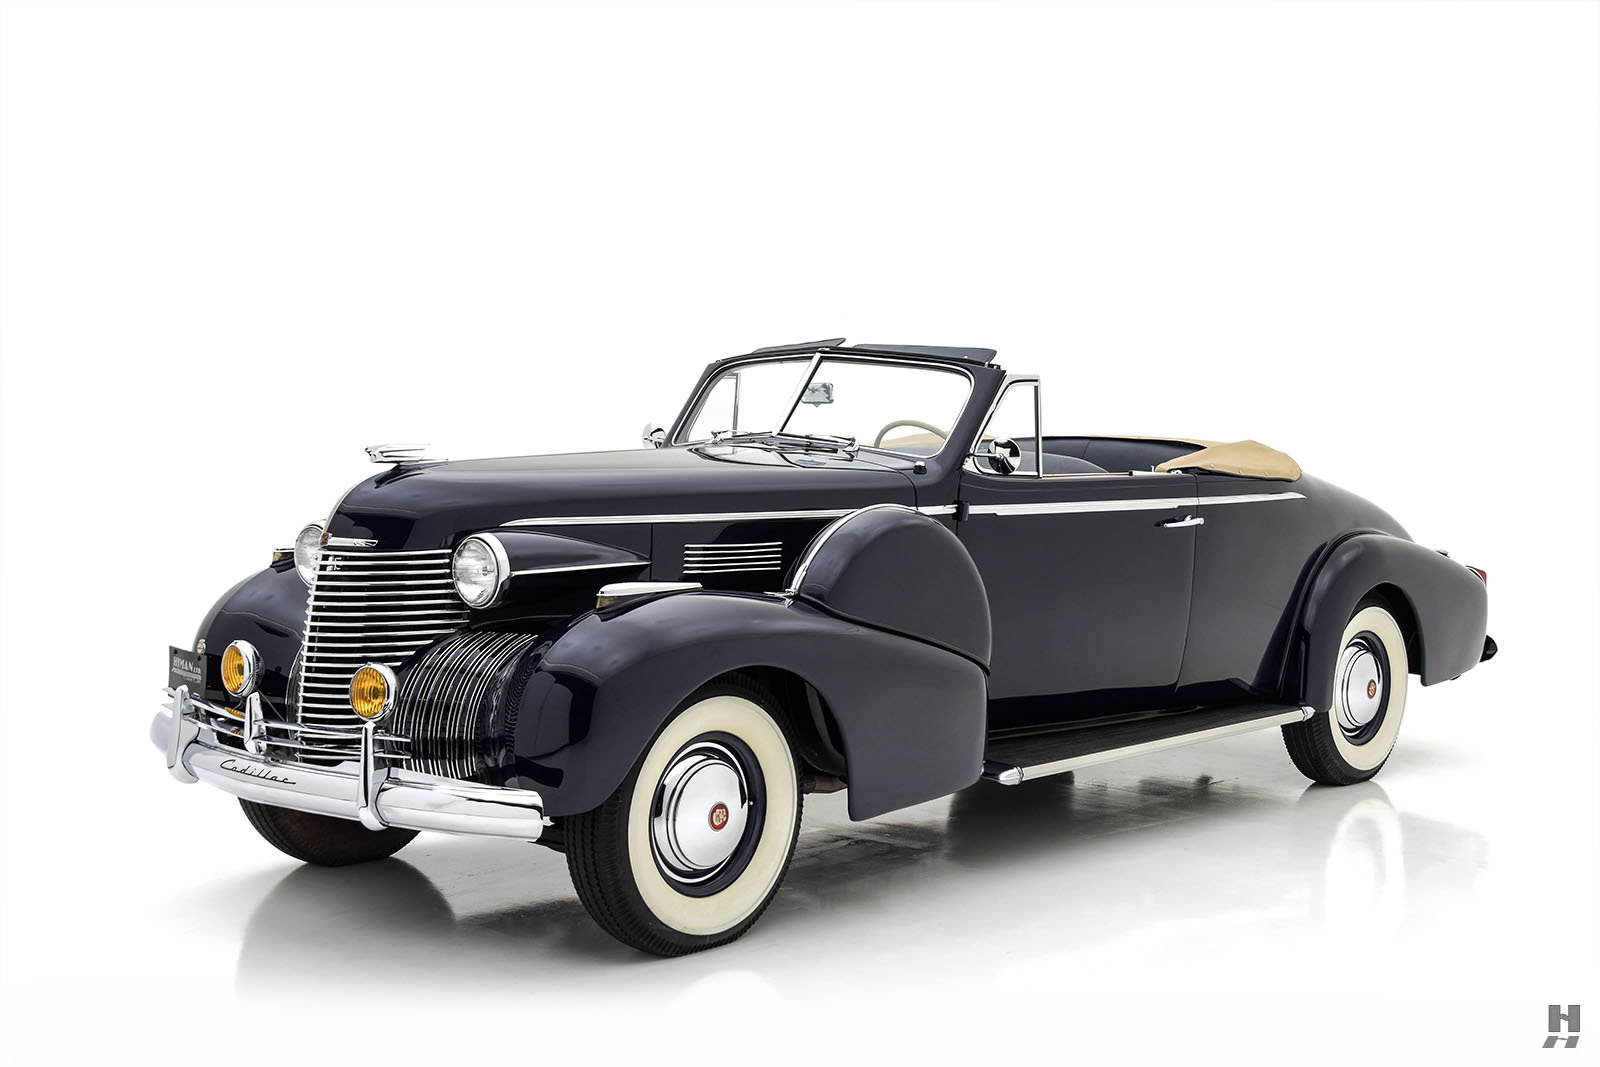 1940 CADILLAC SERIES 75 CONVERTIBLE COUPE For Sale (picture 1 of 6)